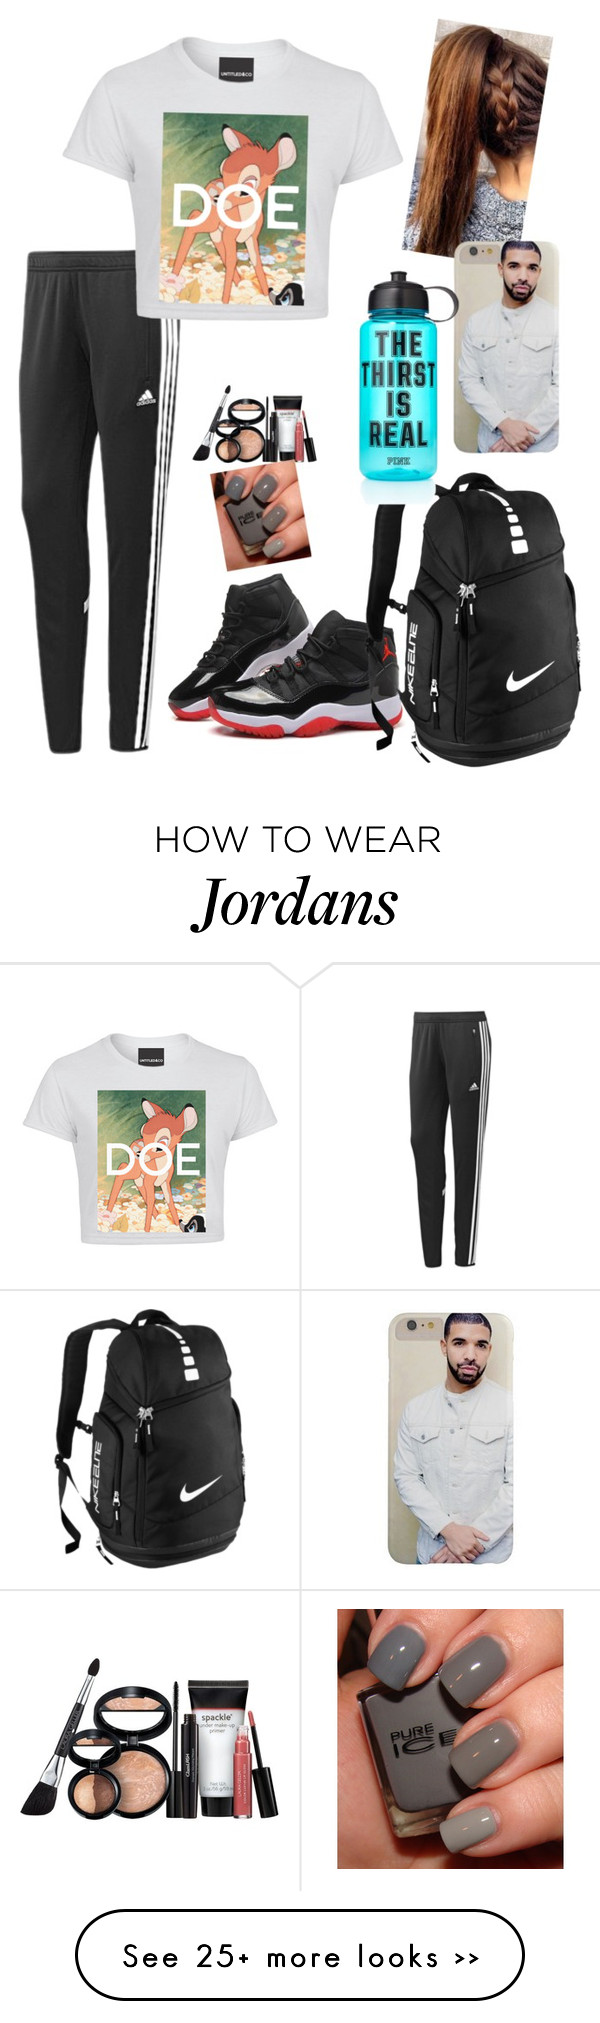 """""""OOTD 9/15/15"""" by kirstinv1226 on Polyvore featuring adidas, NIKE, Victoria's Secret PINK and Laura Geller"""